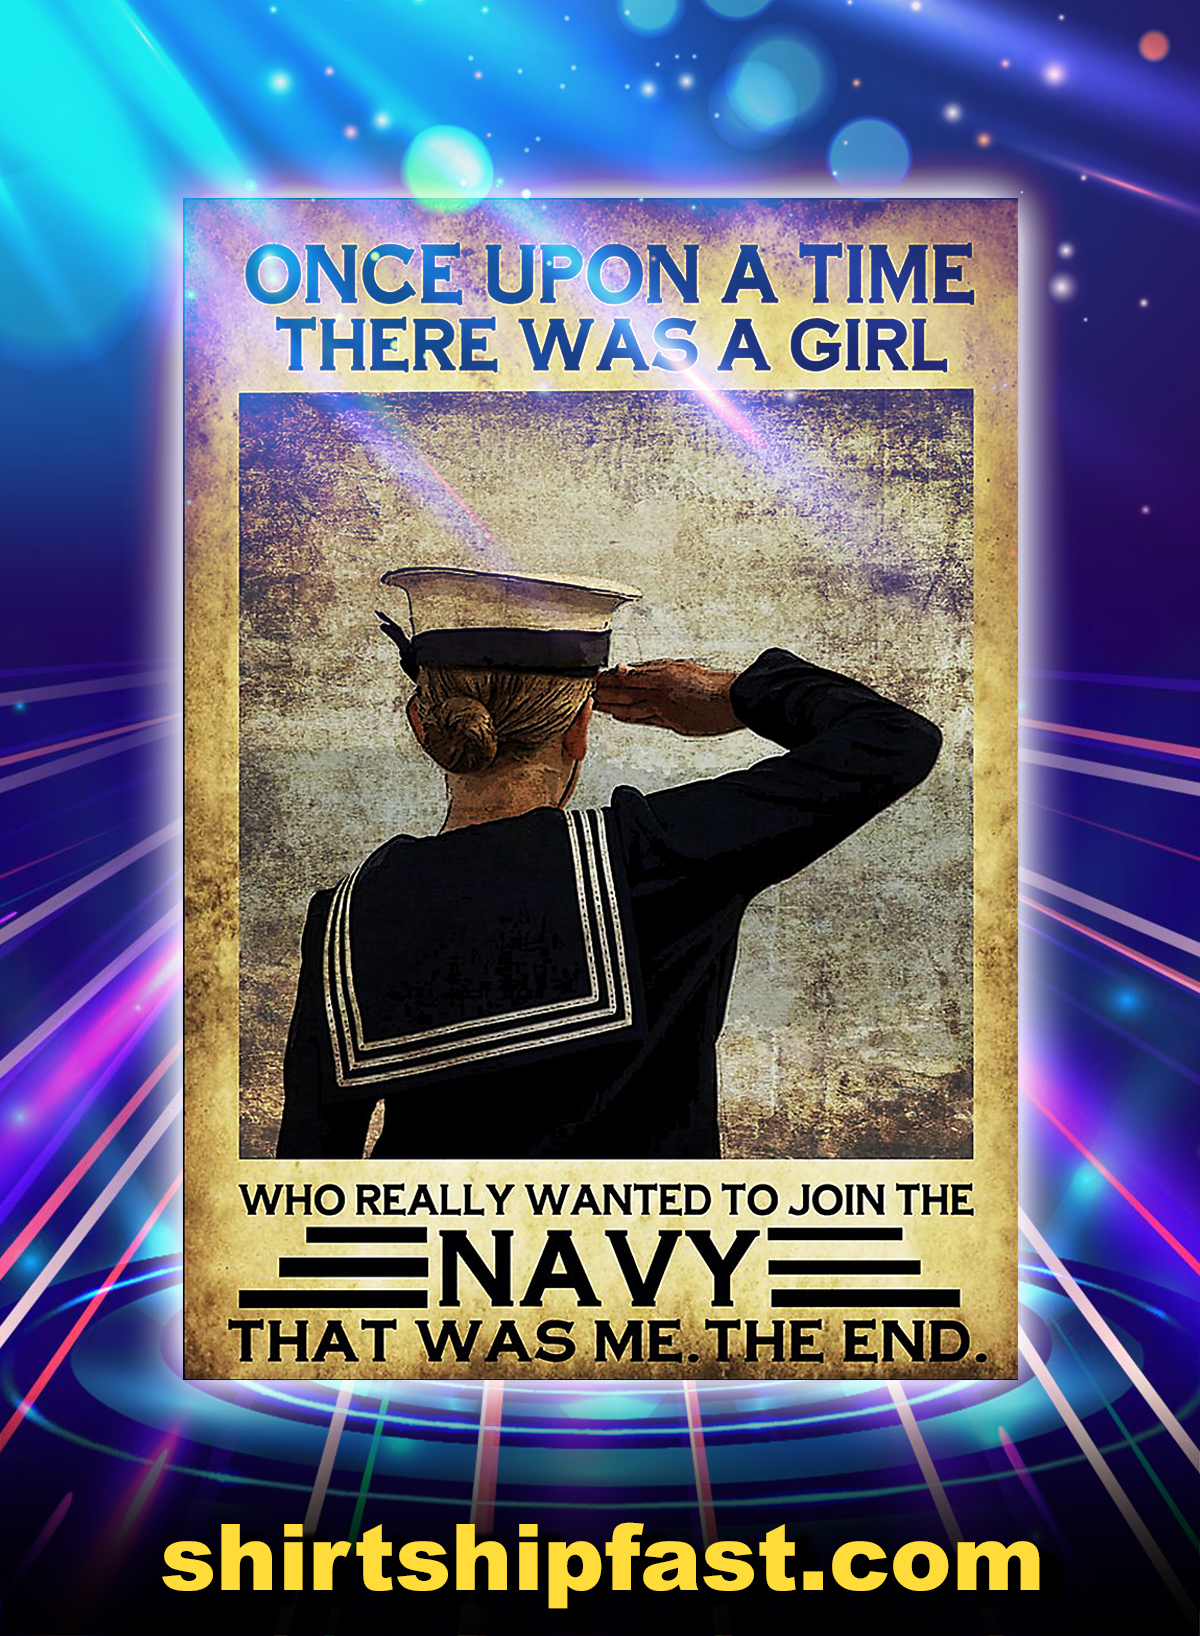 Once upon a time there was a girl who really wanted to join the navy poster - A4